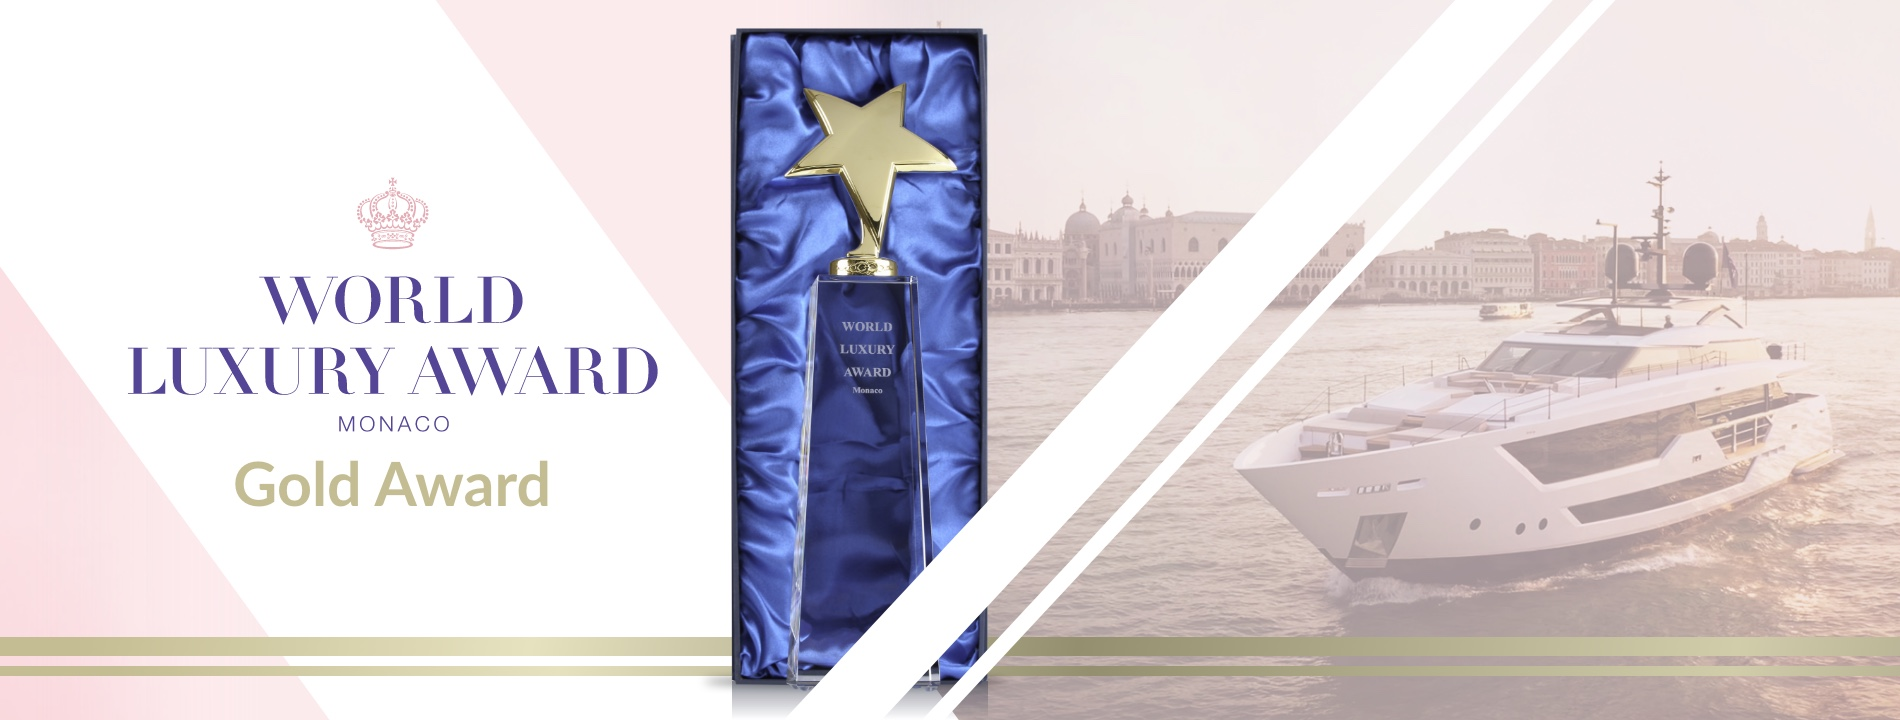 Arachno vince il Gold World Luxury Award